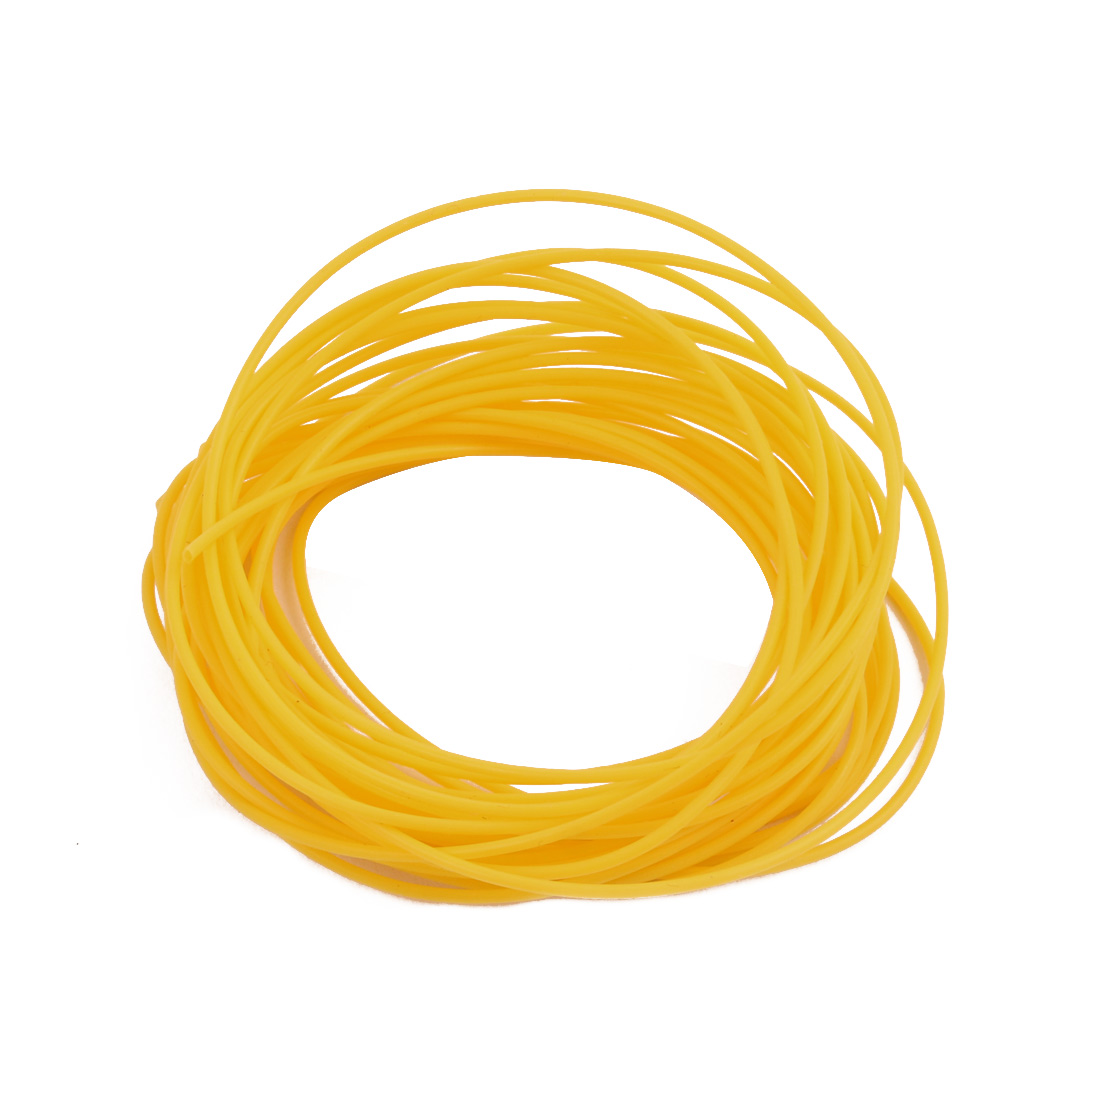 0.86mmx1.16mm PTFE Resistant High Temperature Yellow Tubing 5 Meters 16.4Ft